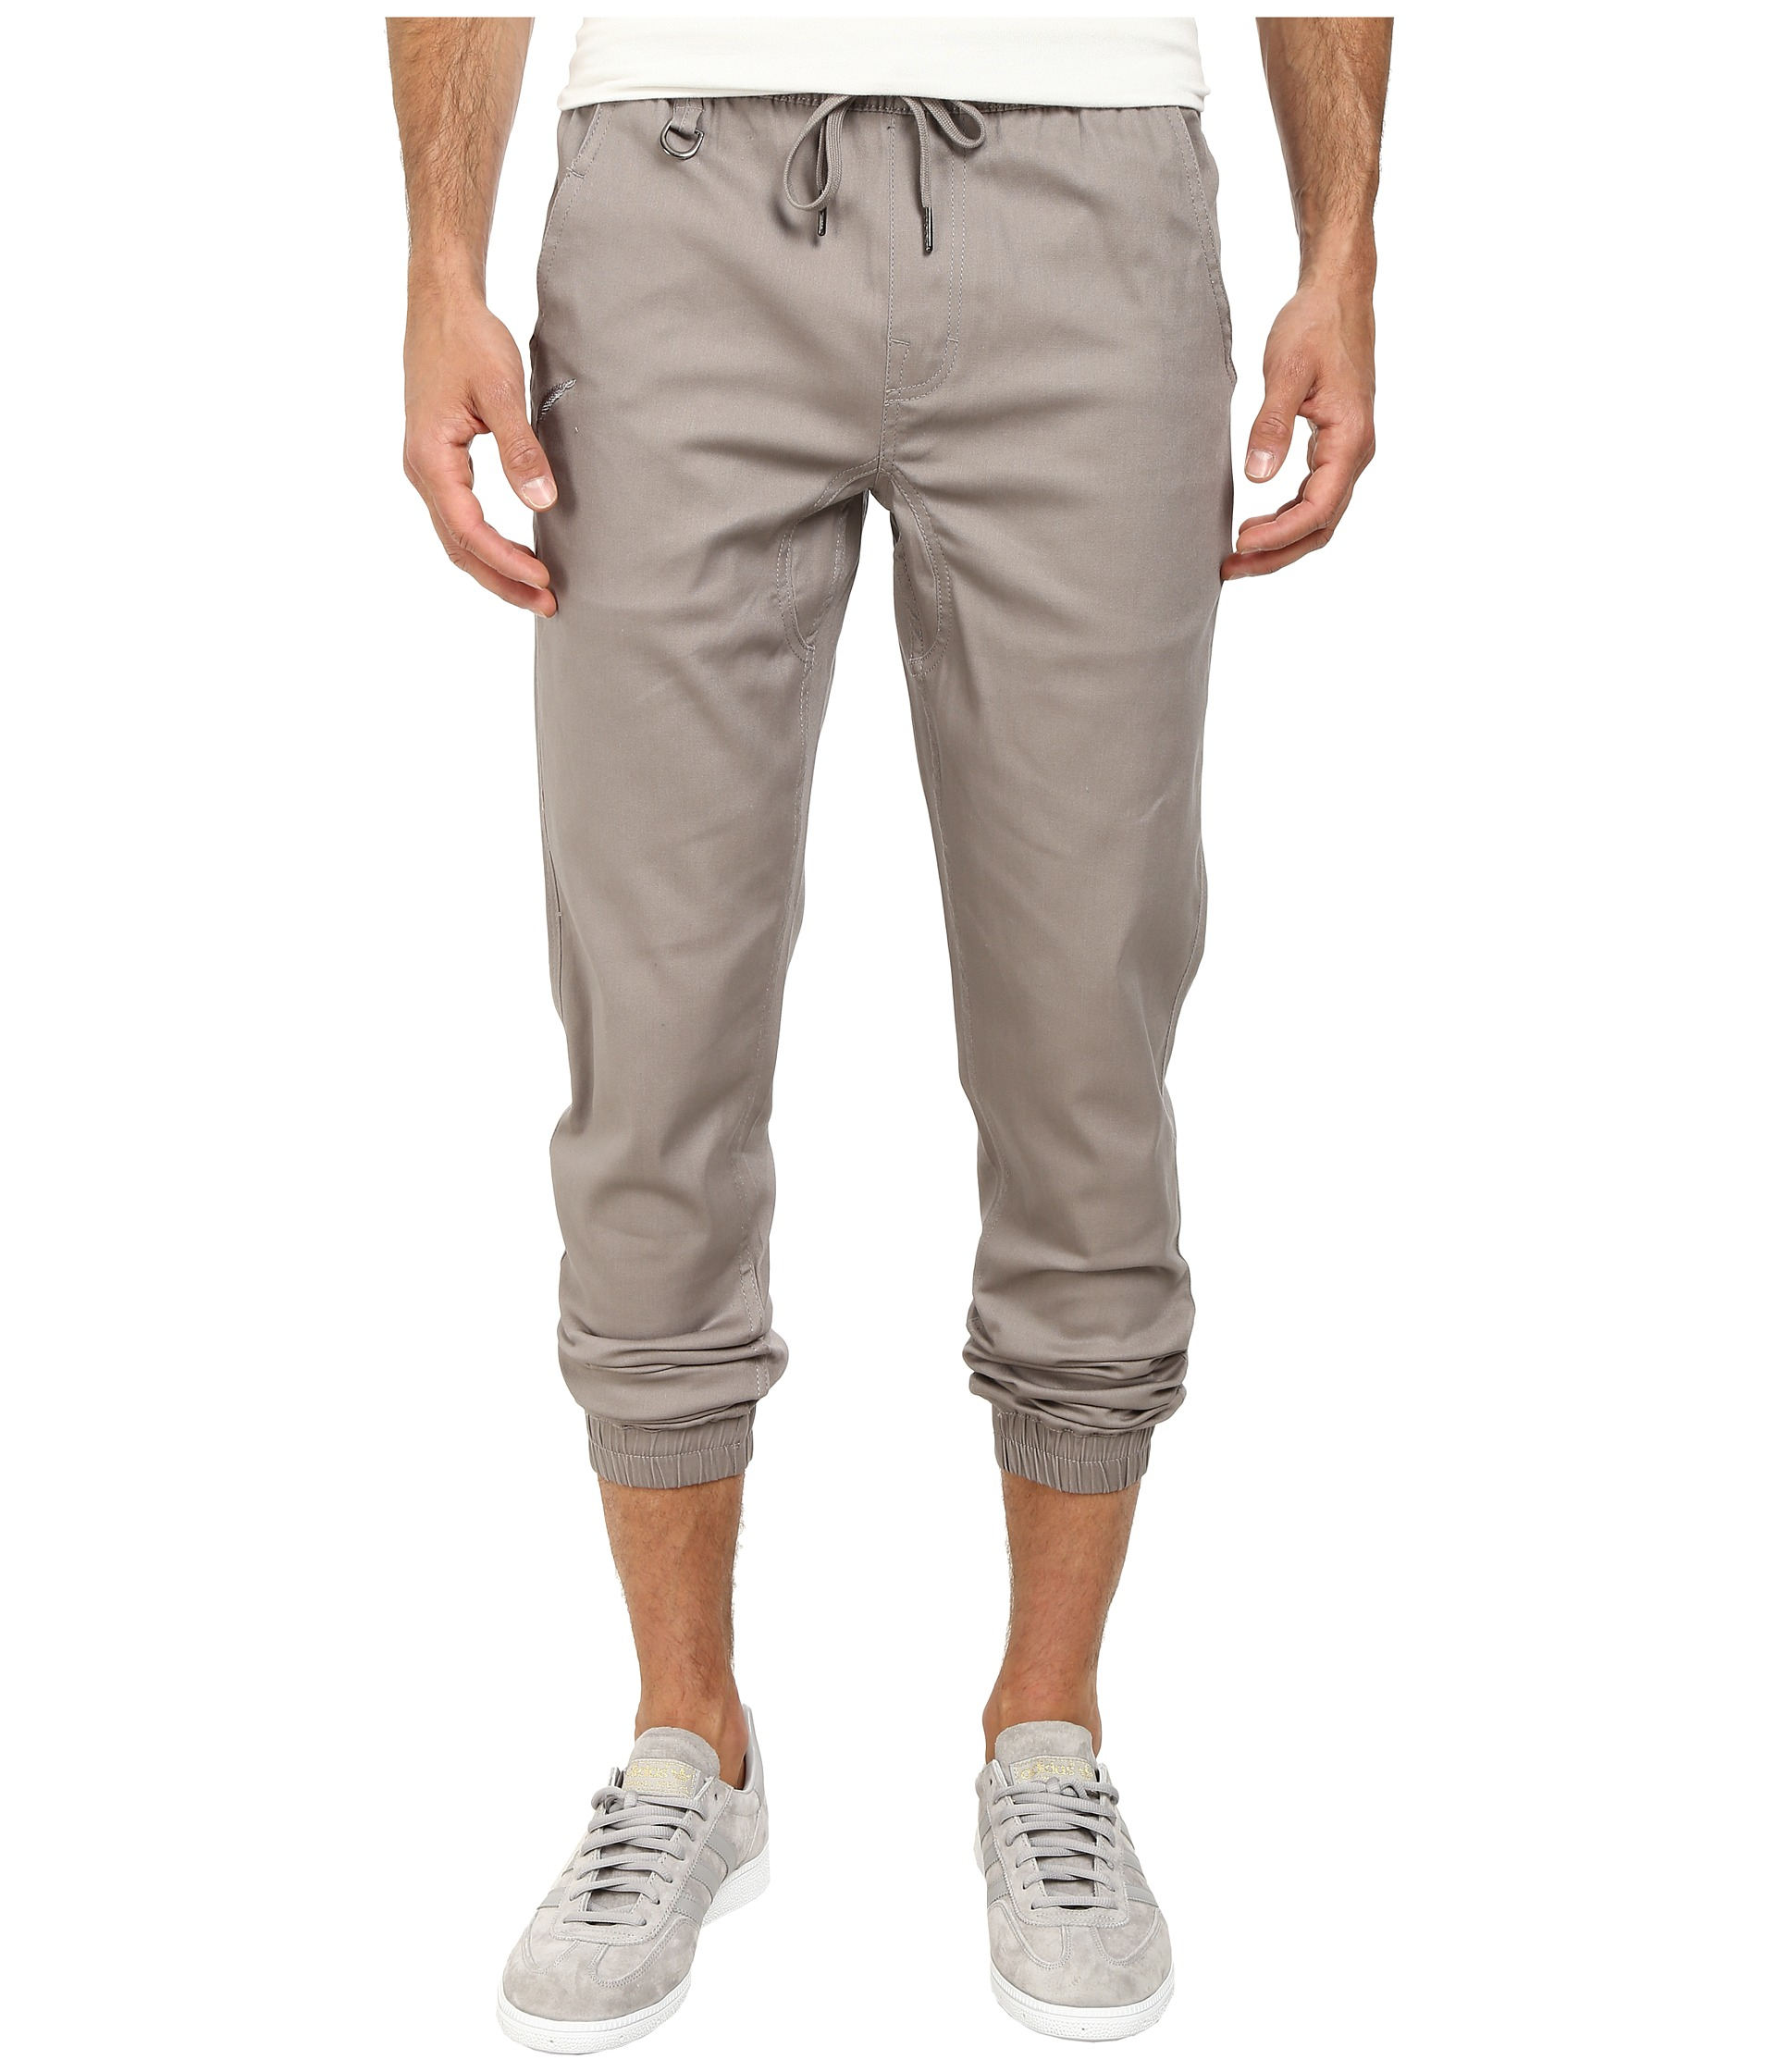 Wonderful Sweatpants Grey Jogger Pants For Womenin Pants Amp Capris From Women